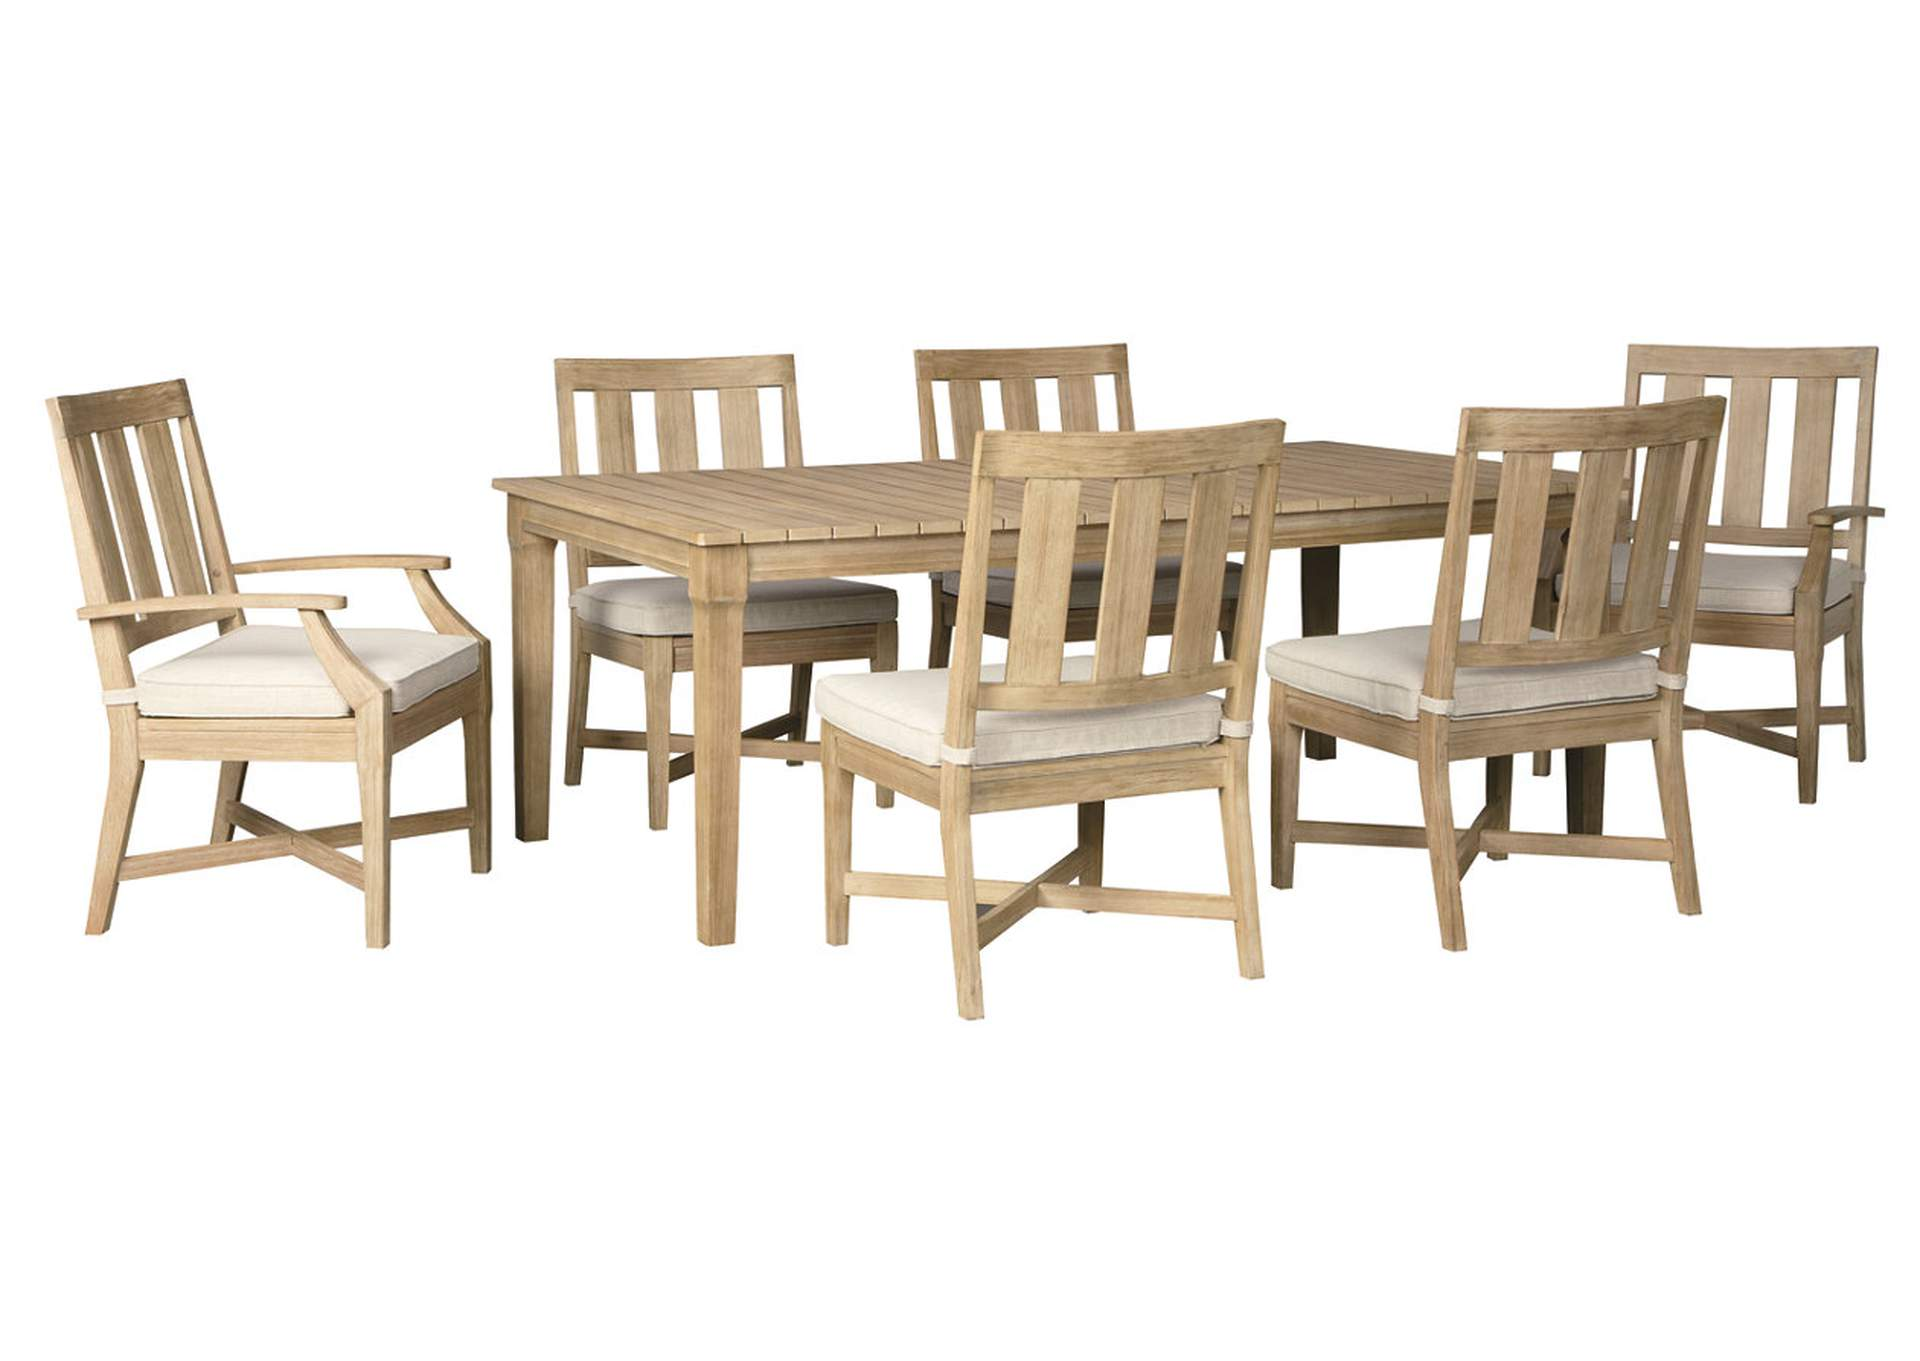 Clare View Beige Dining Table w/Umbrella Option, 4 Chair ... on Clare View Beige Outdoor Living Room id=32532